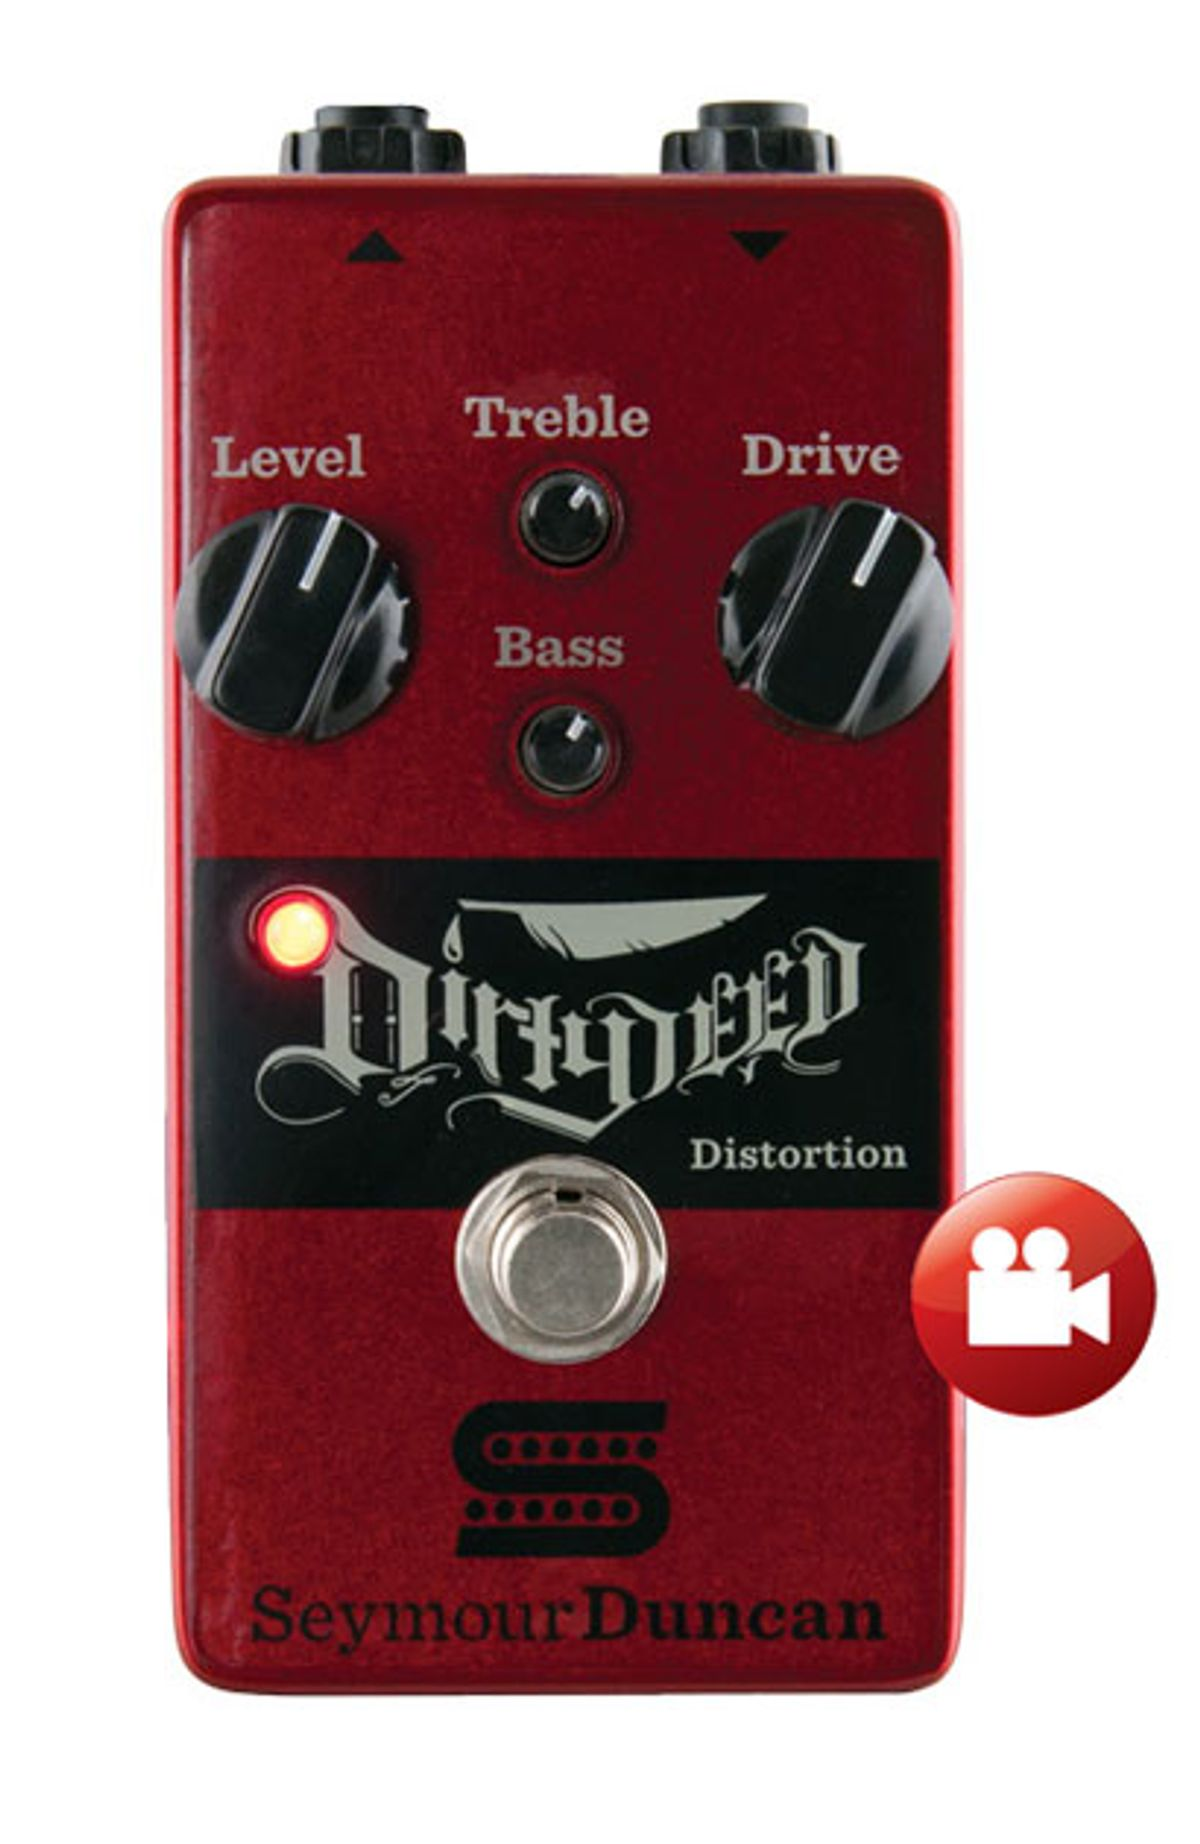 Seymour Duncan Dirty Deed Review